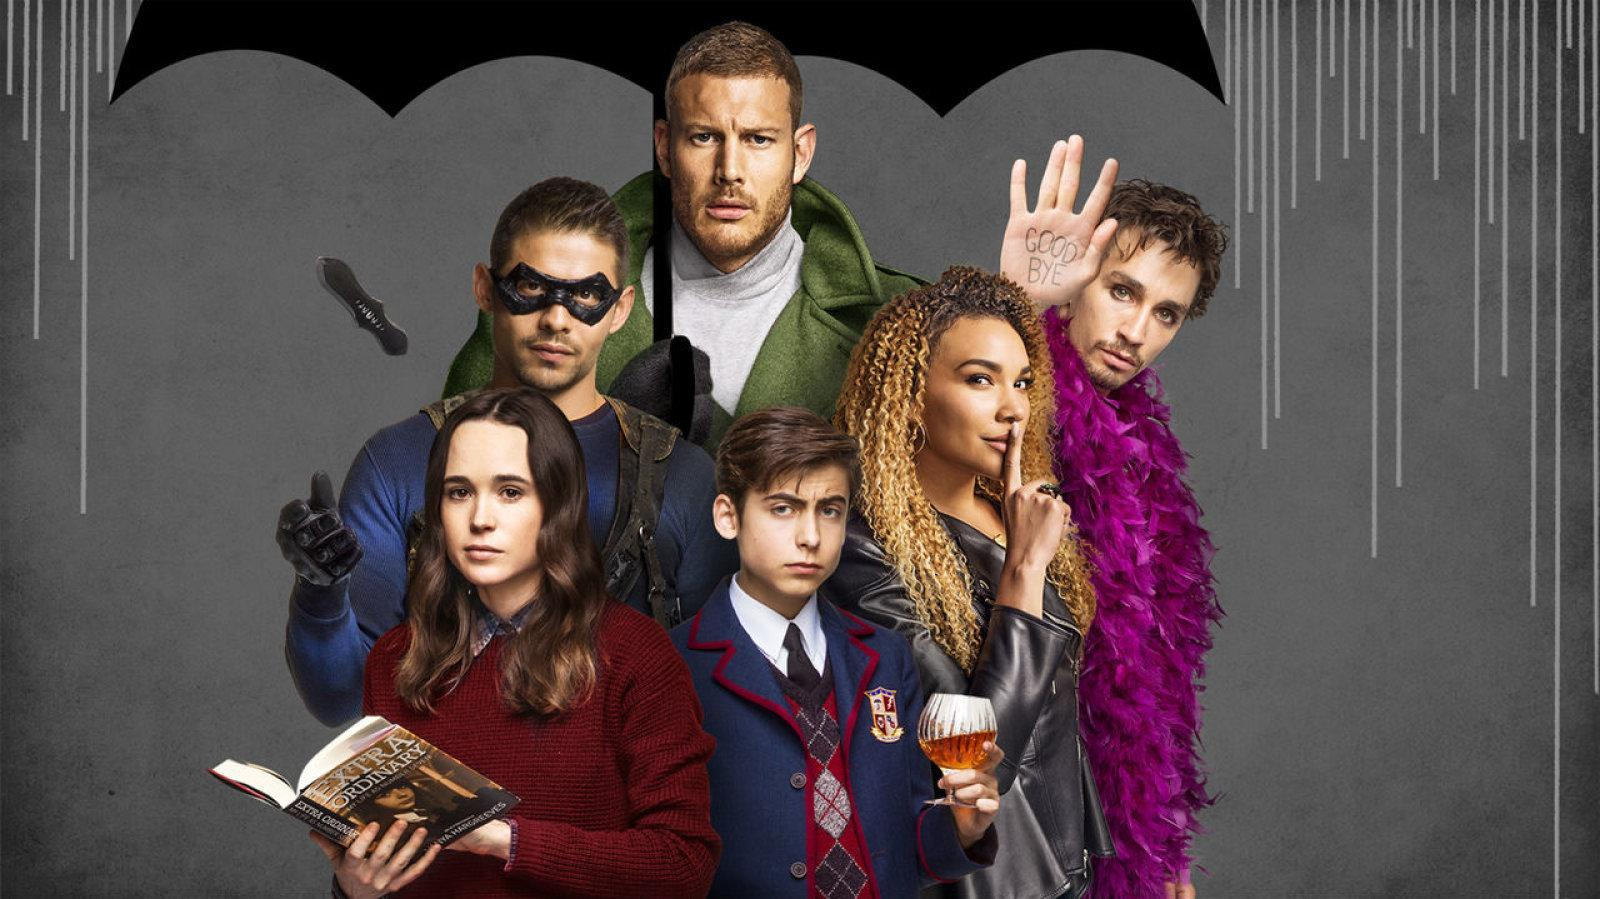 Which umbrella academy character are you?